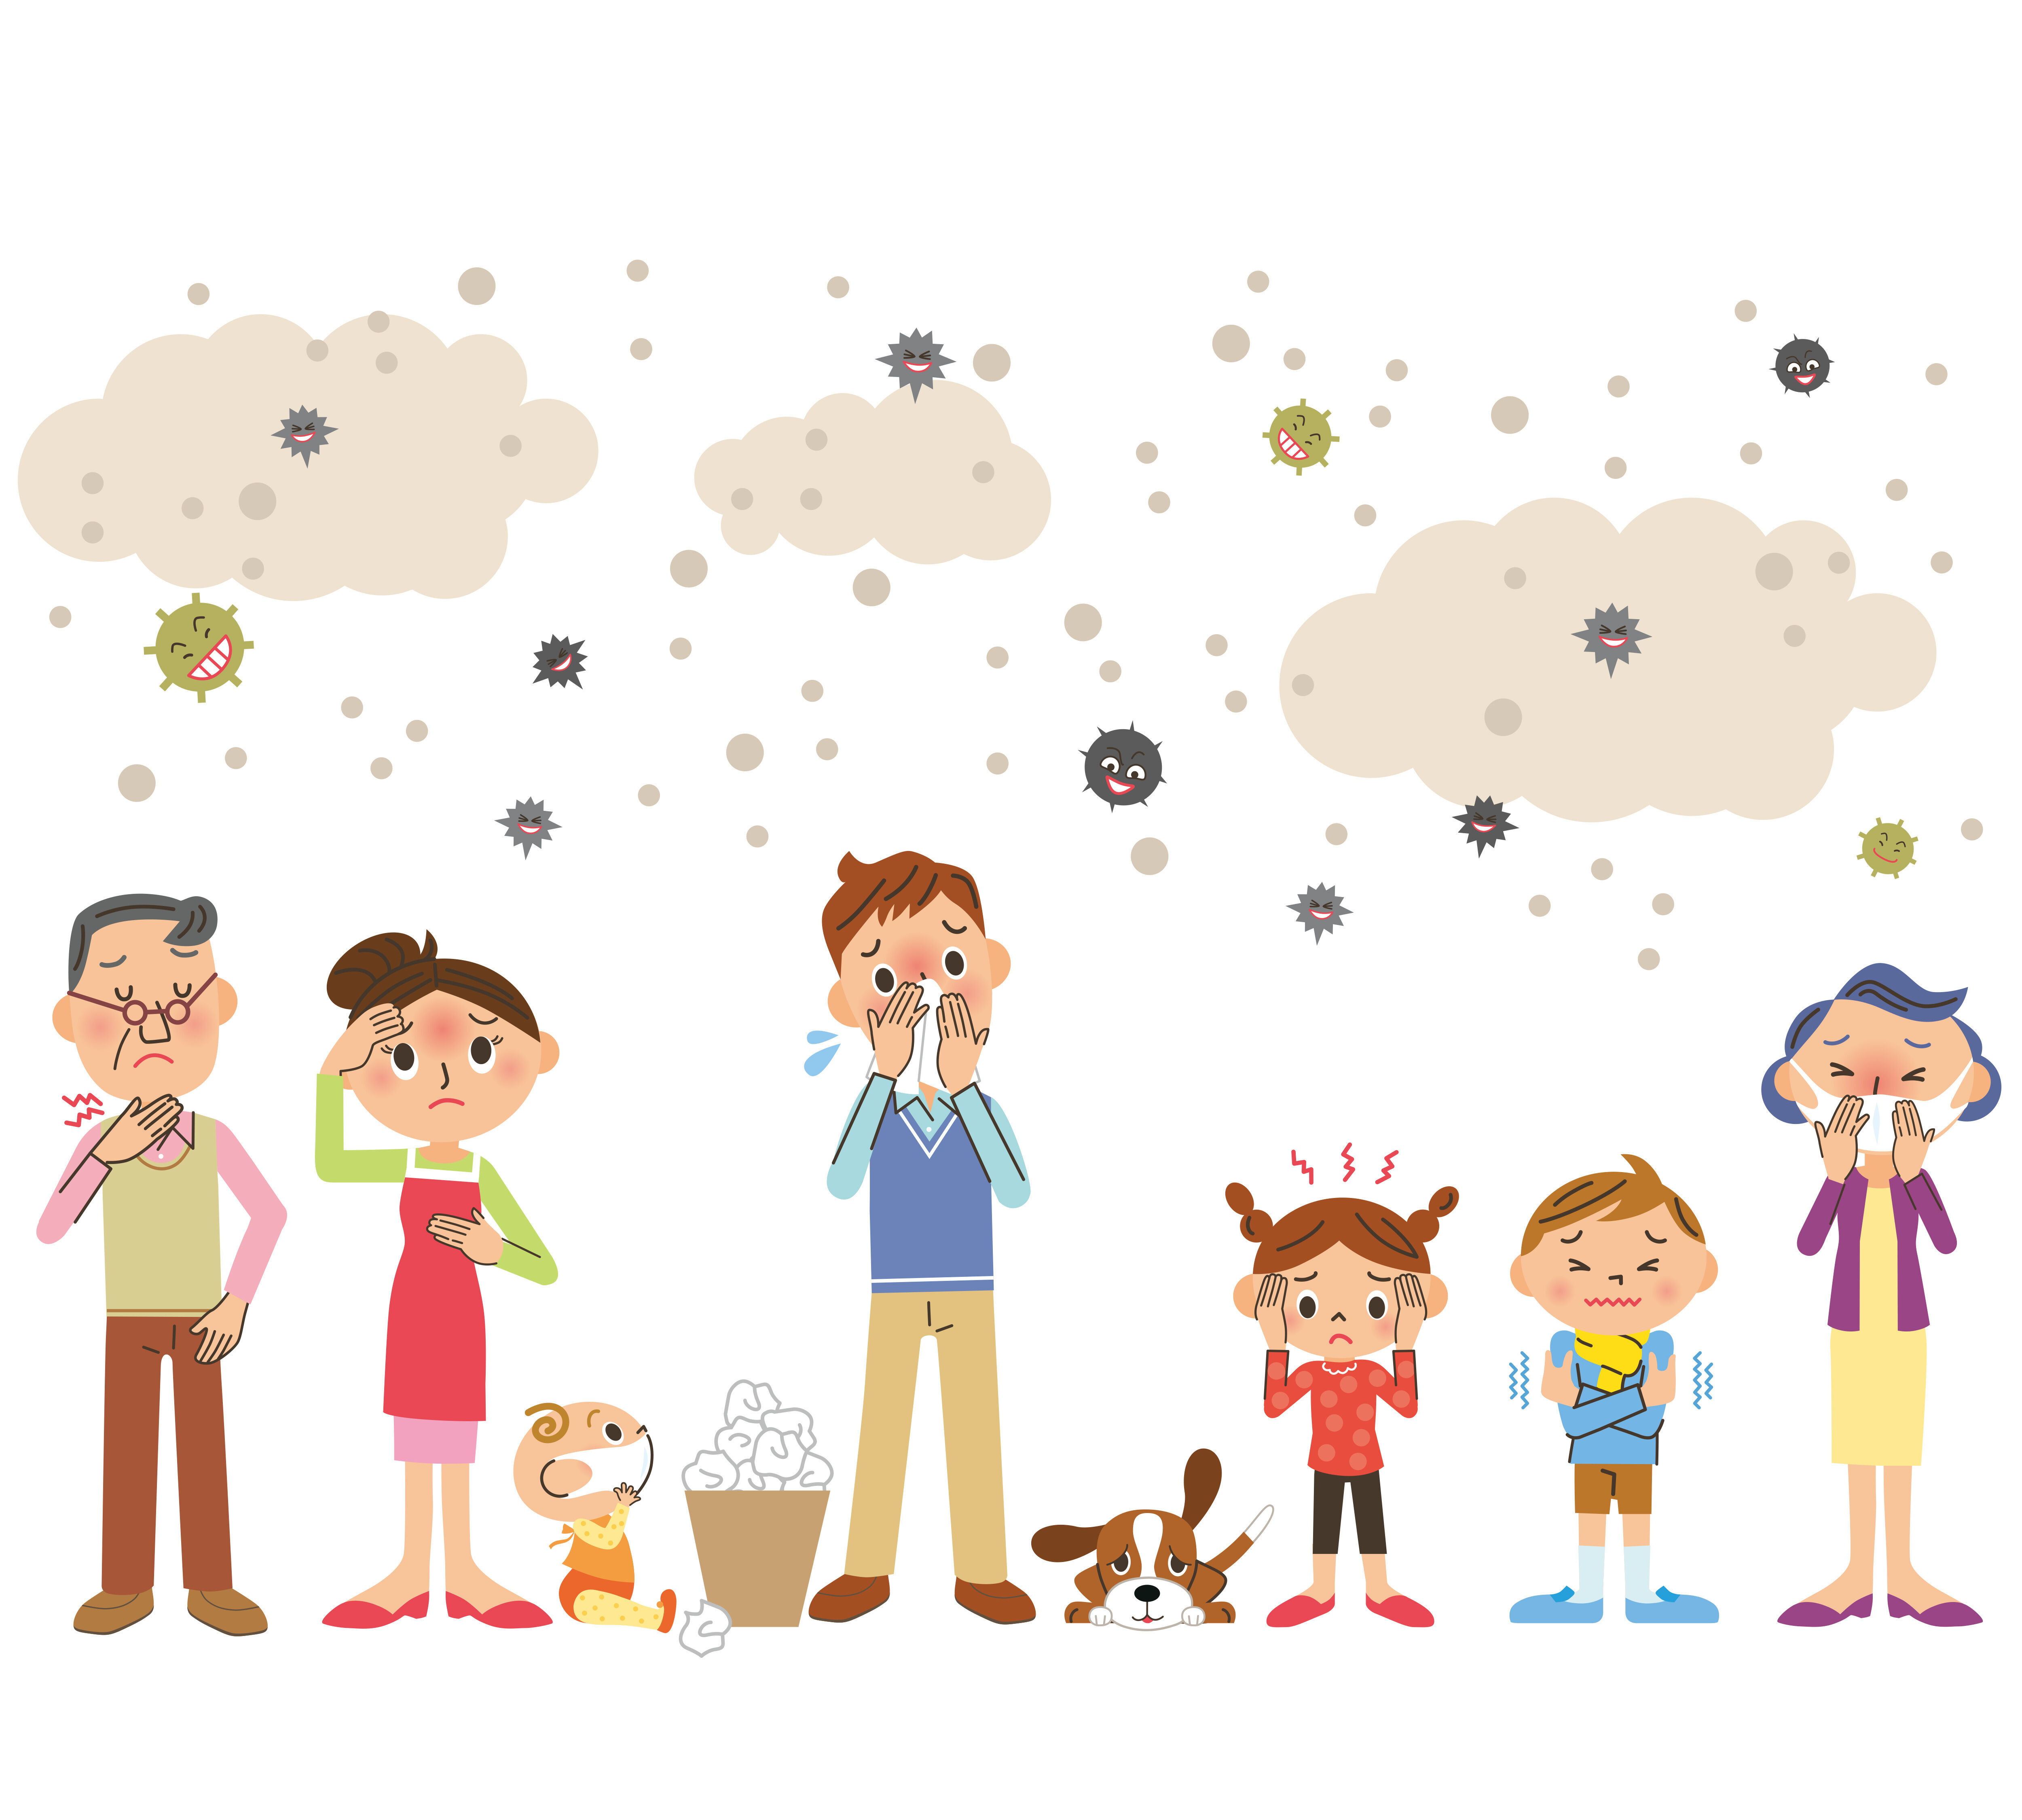 The family suffers from allergies